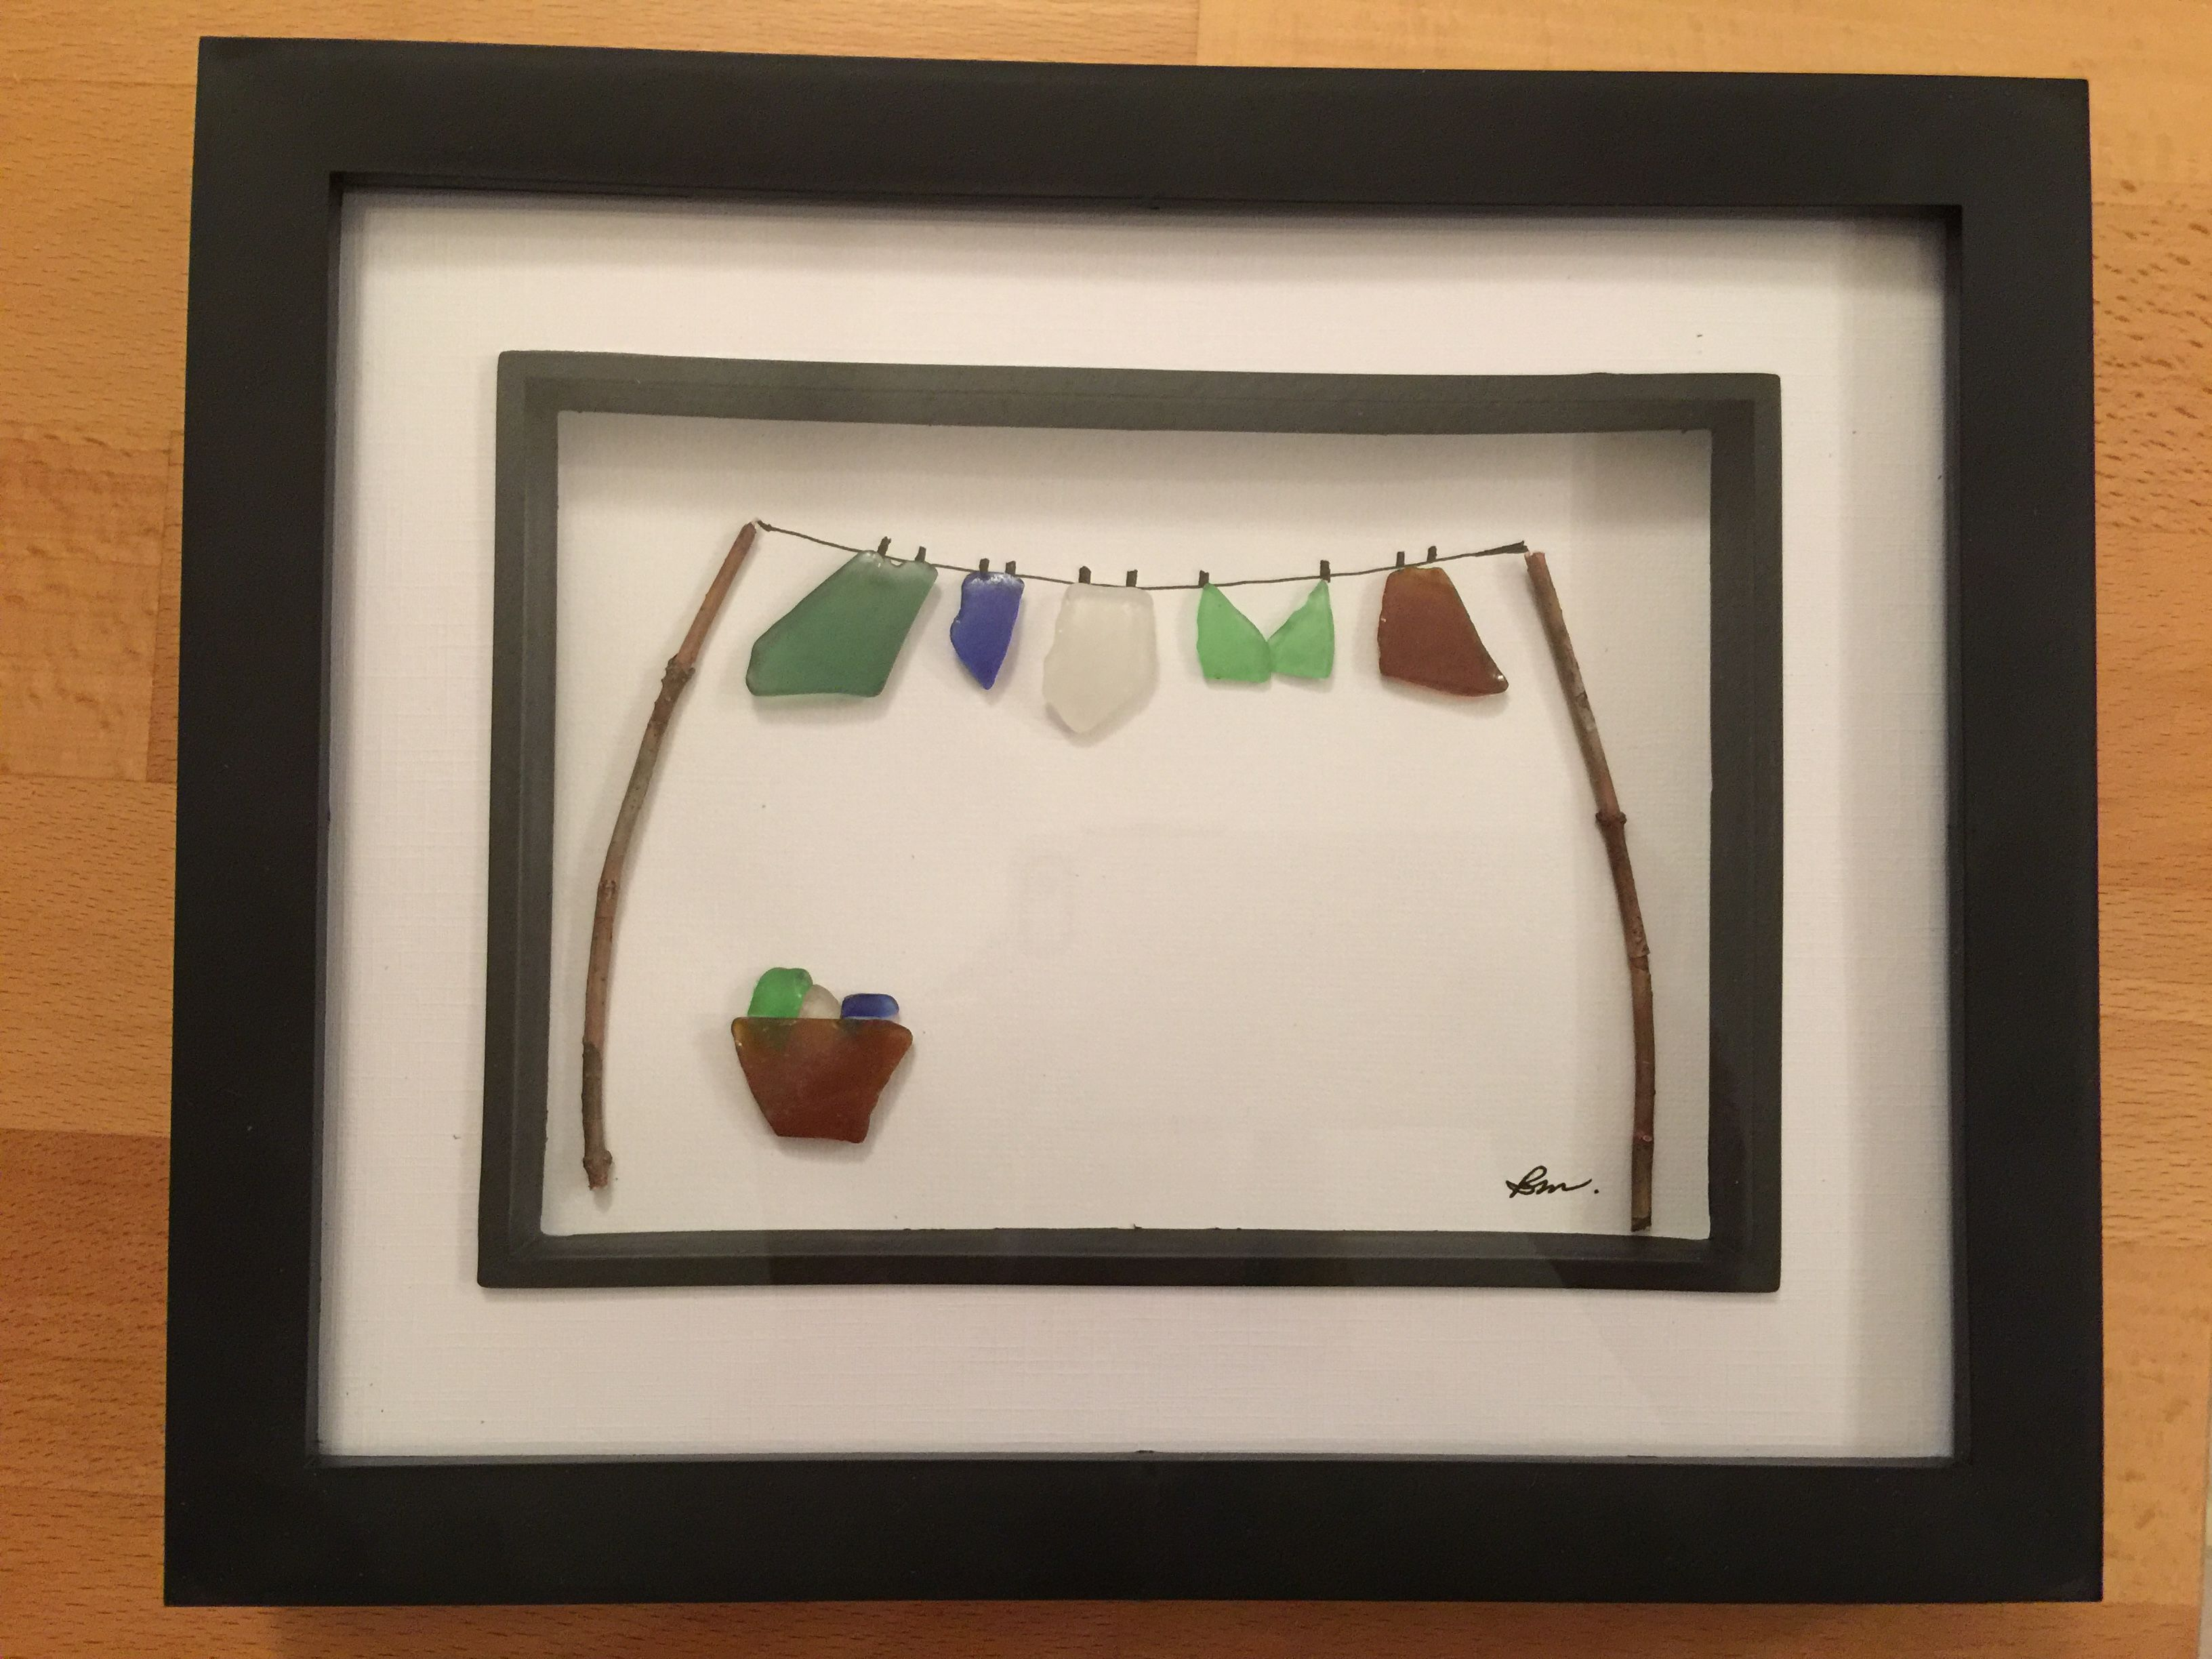 pin by barb hungerford on crafts | pinterest | sea glass art, glass